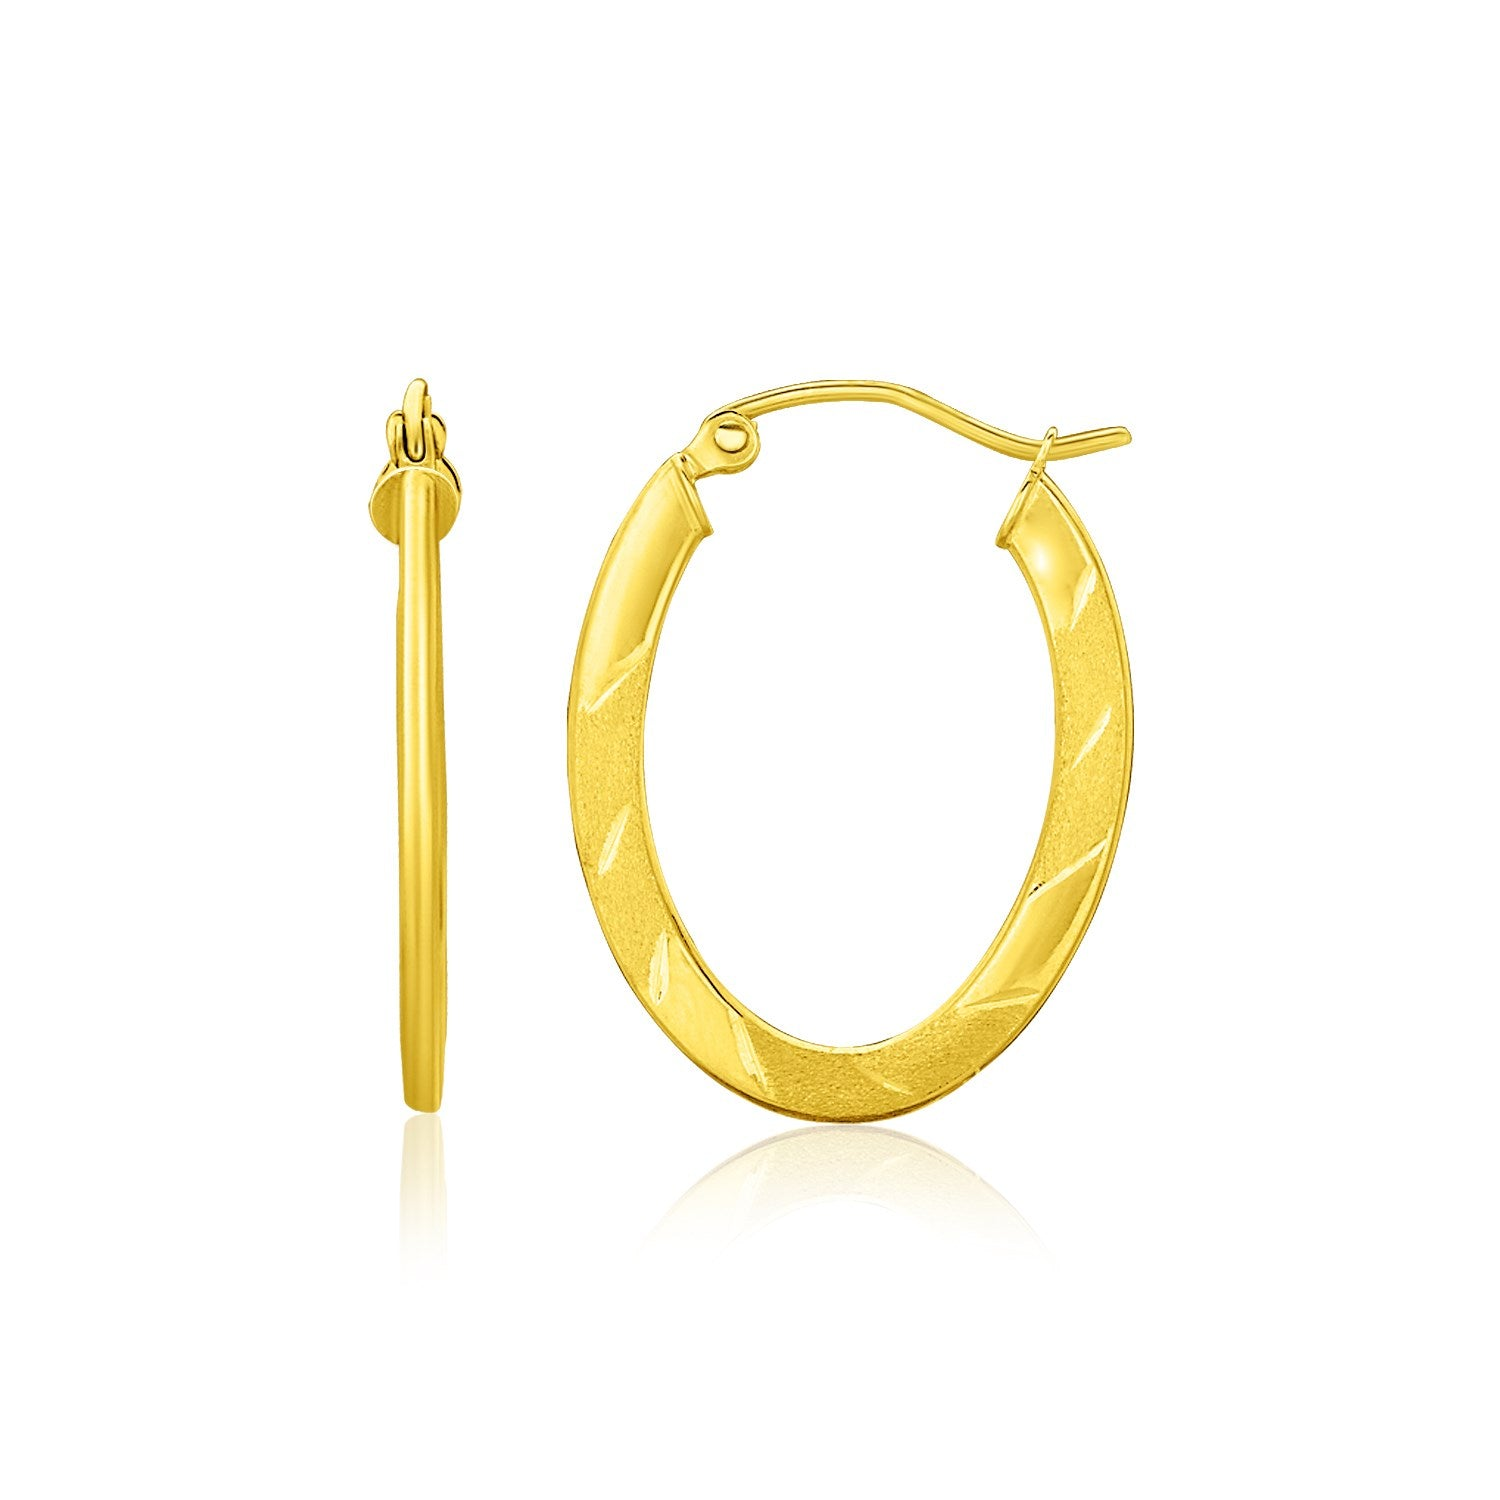 14K Yellow Gold Oval Shape Textured Hoop Earrings